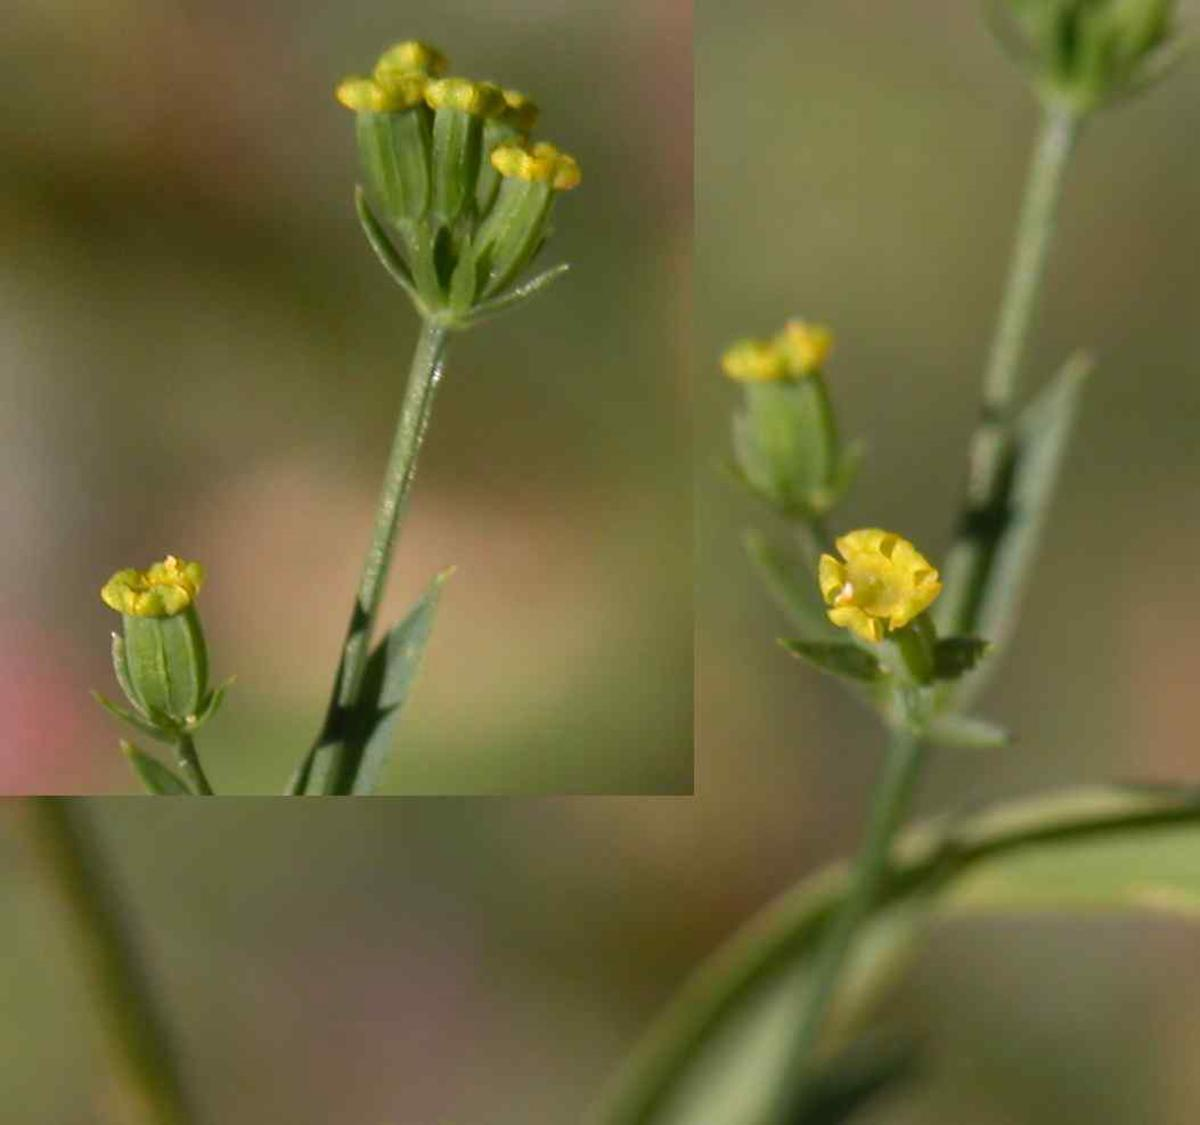 Hare's-Ear, Sickle-leaved flower